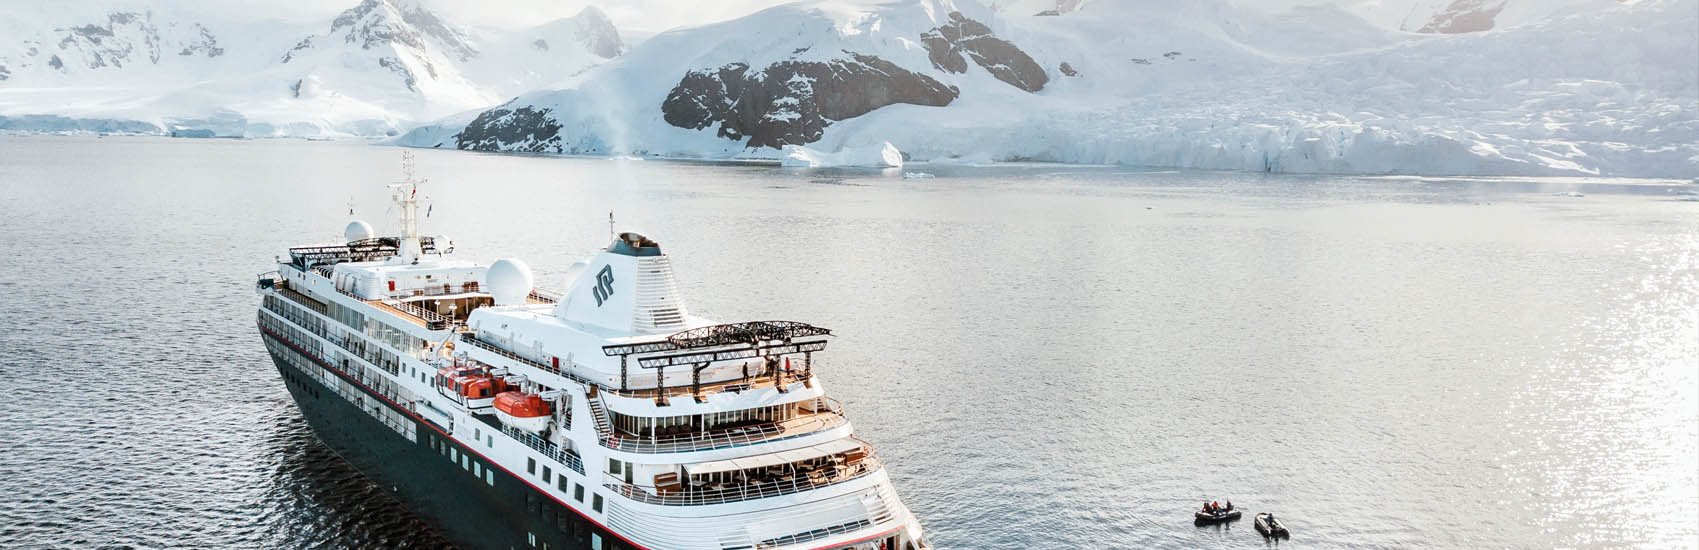 Explore the Arctic with Silversea! 0